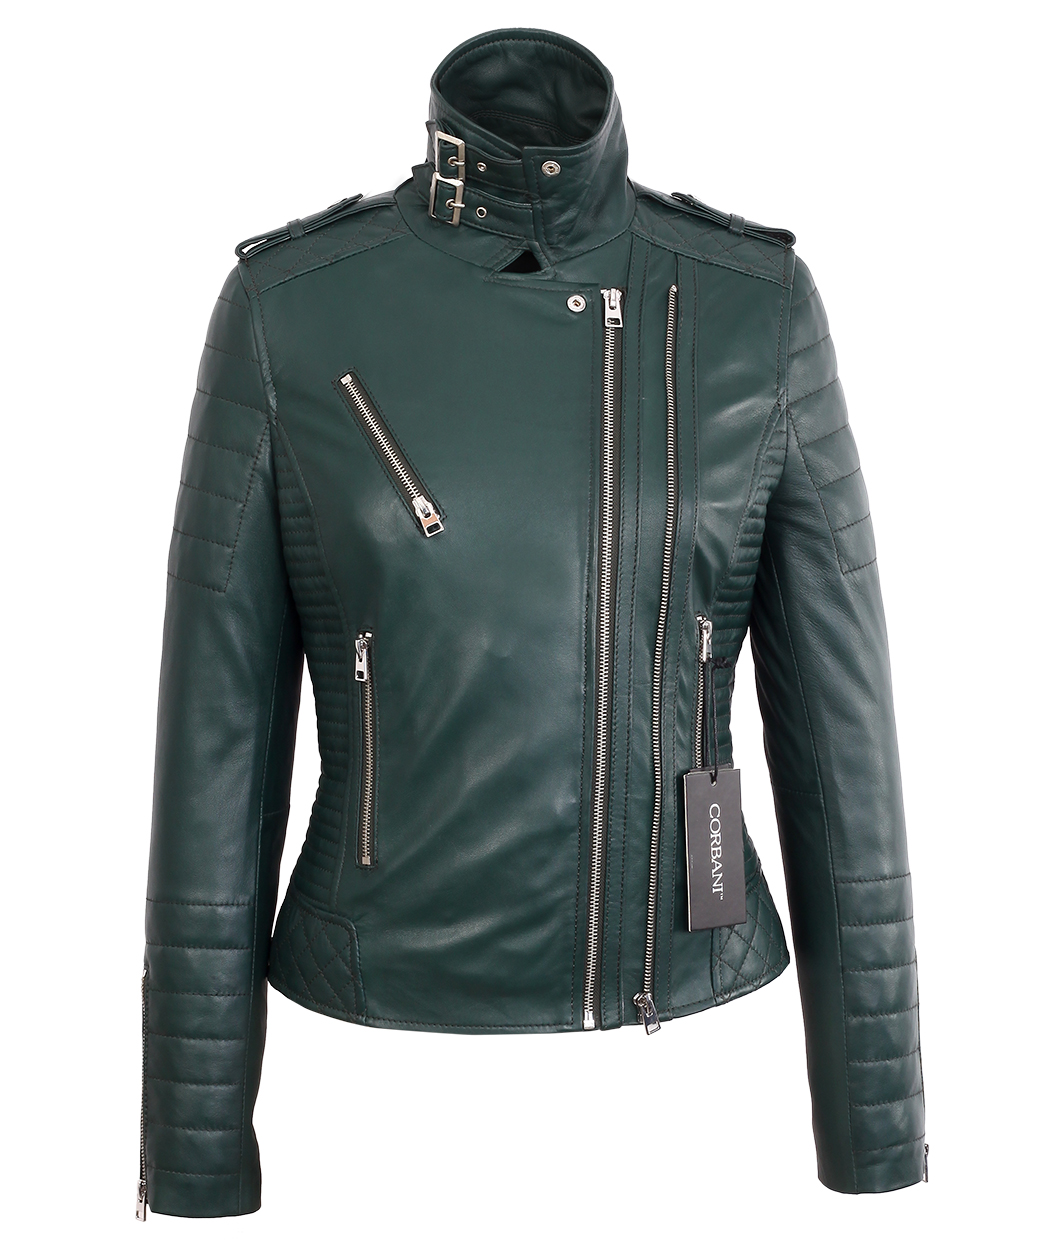 588b873cfe53 ... Womens Biker Green Lambskin Real Leather Jacket. Sale! IMG_6937 ·  IMG_6936